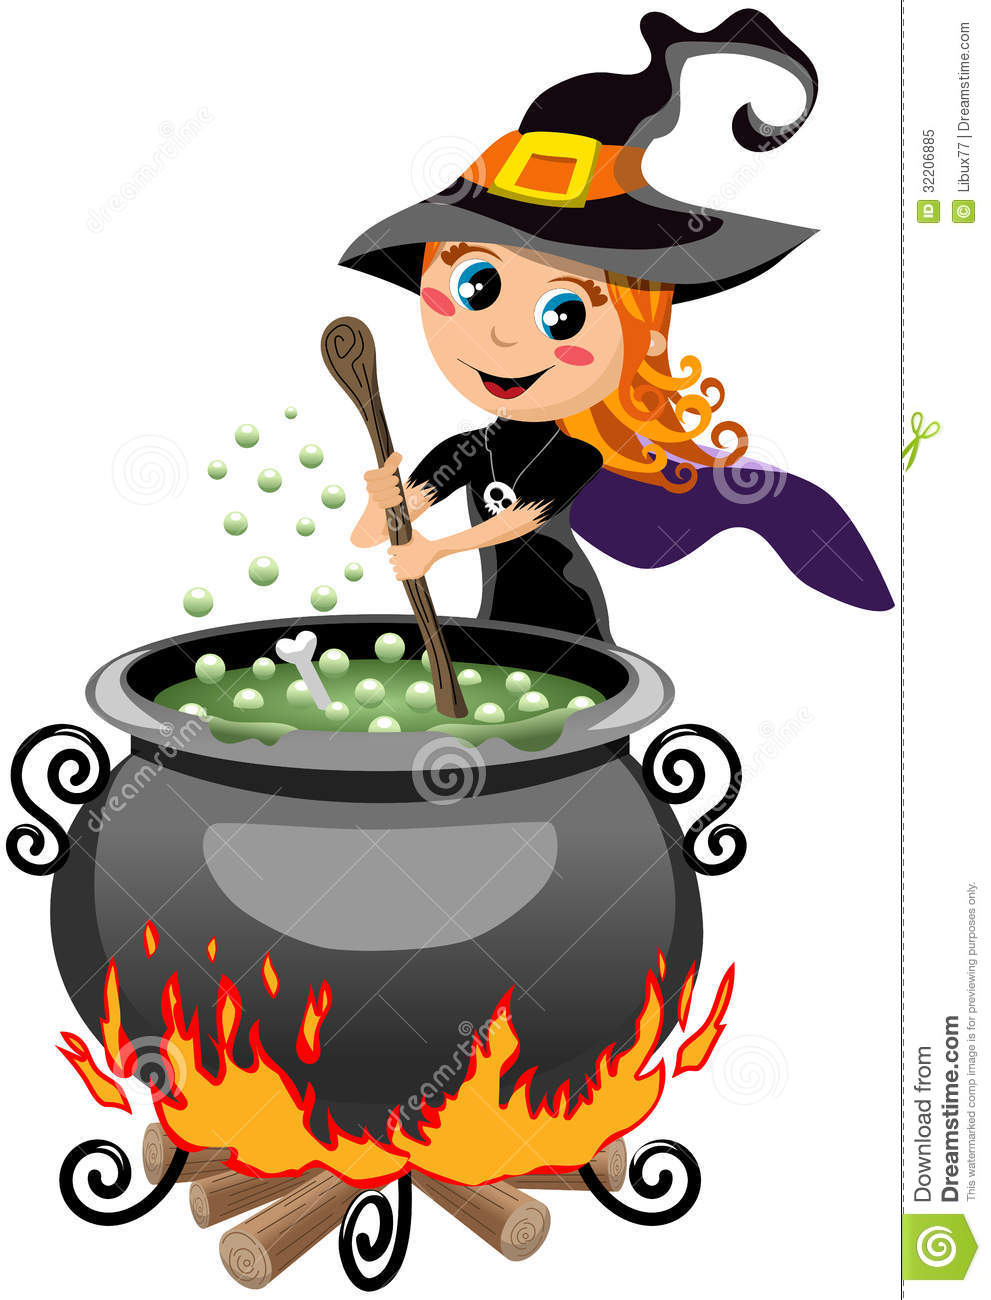 cute witch clip art viewing clipart panda free clipart images rh clipartpanda com cute witch clipart free cute witch clipart free